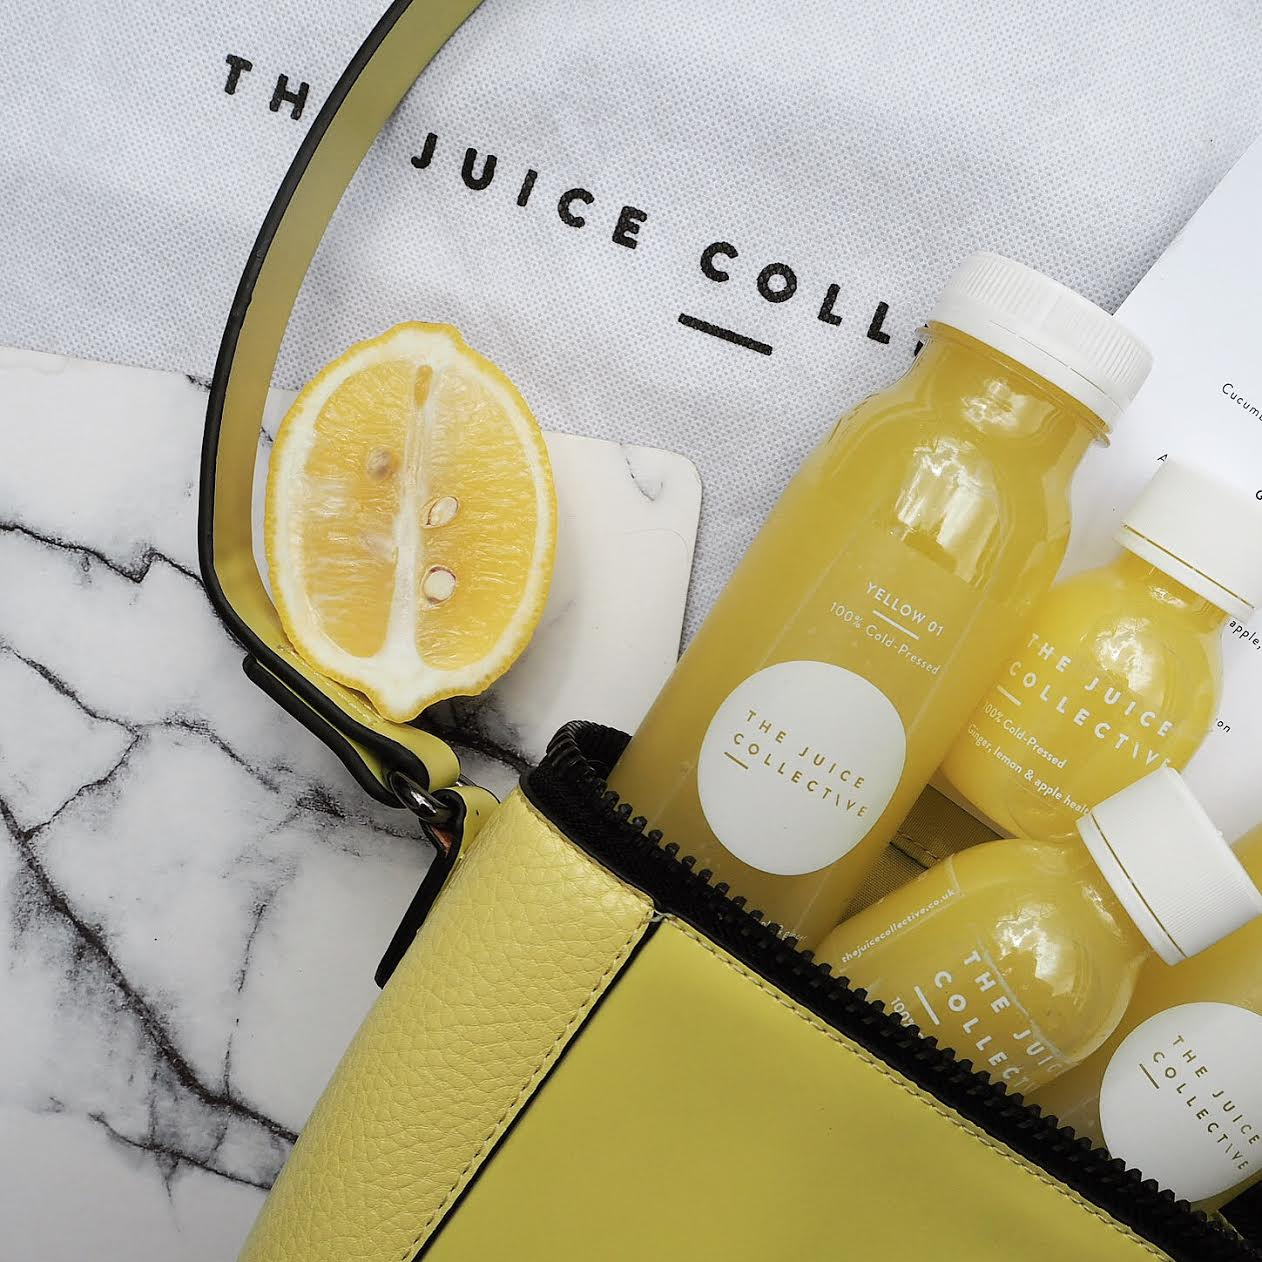 Juice Collective